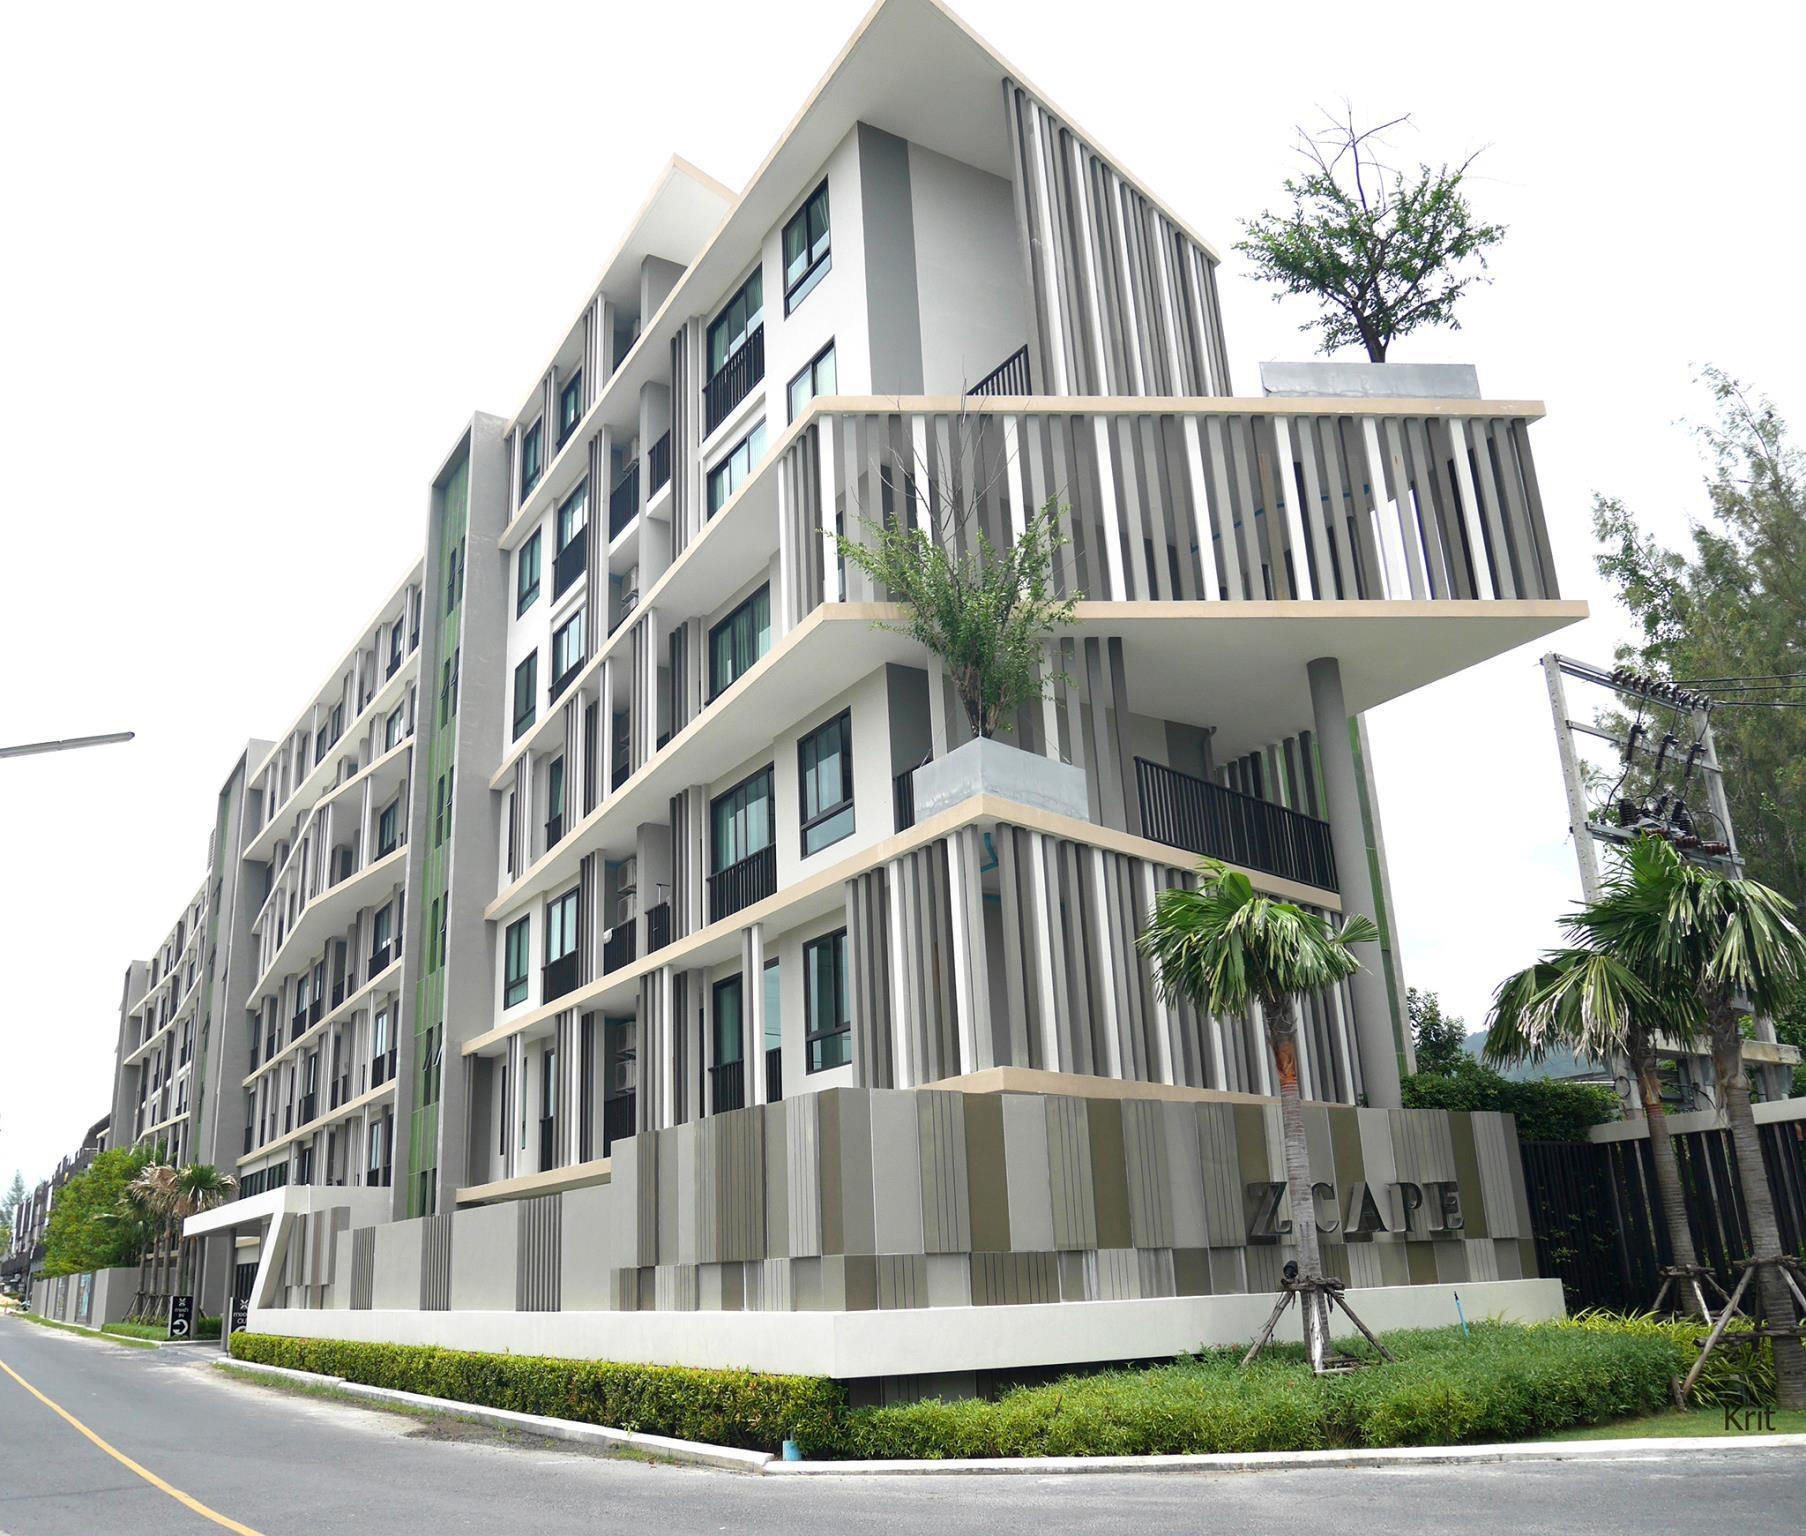 Zcape 2 Residence By AHM Asia